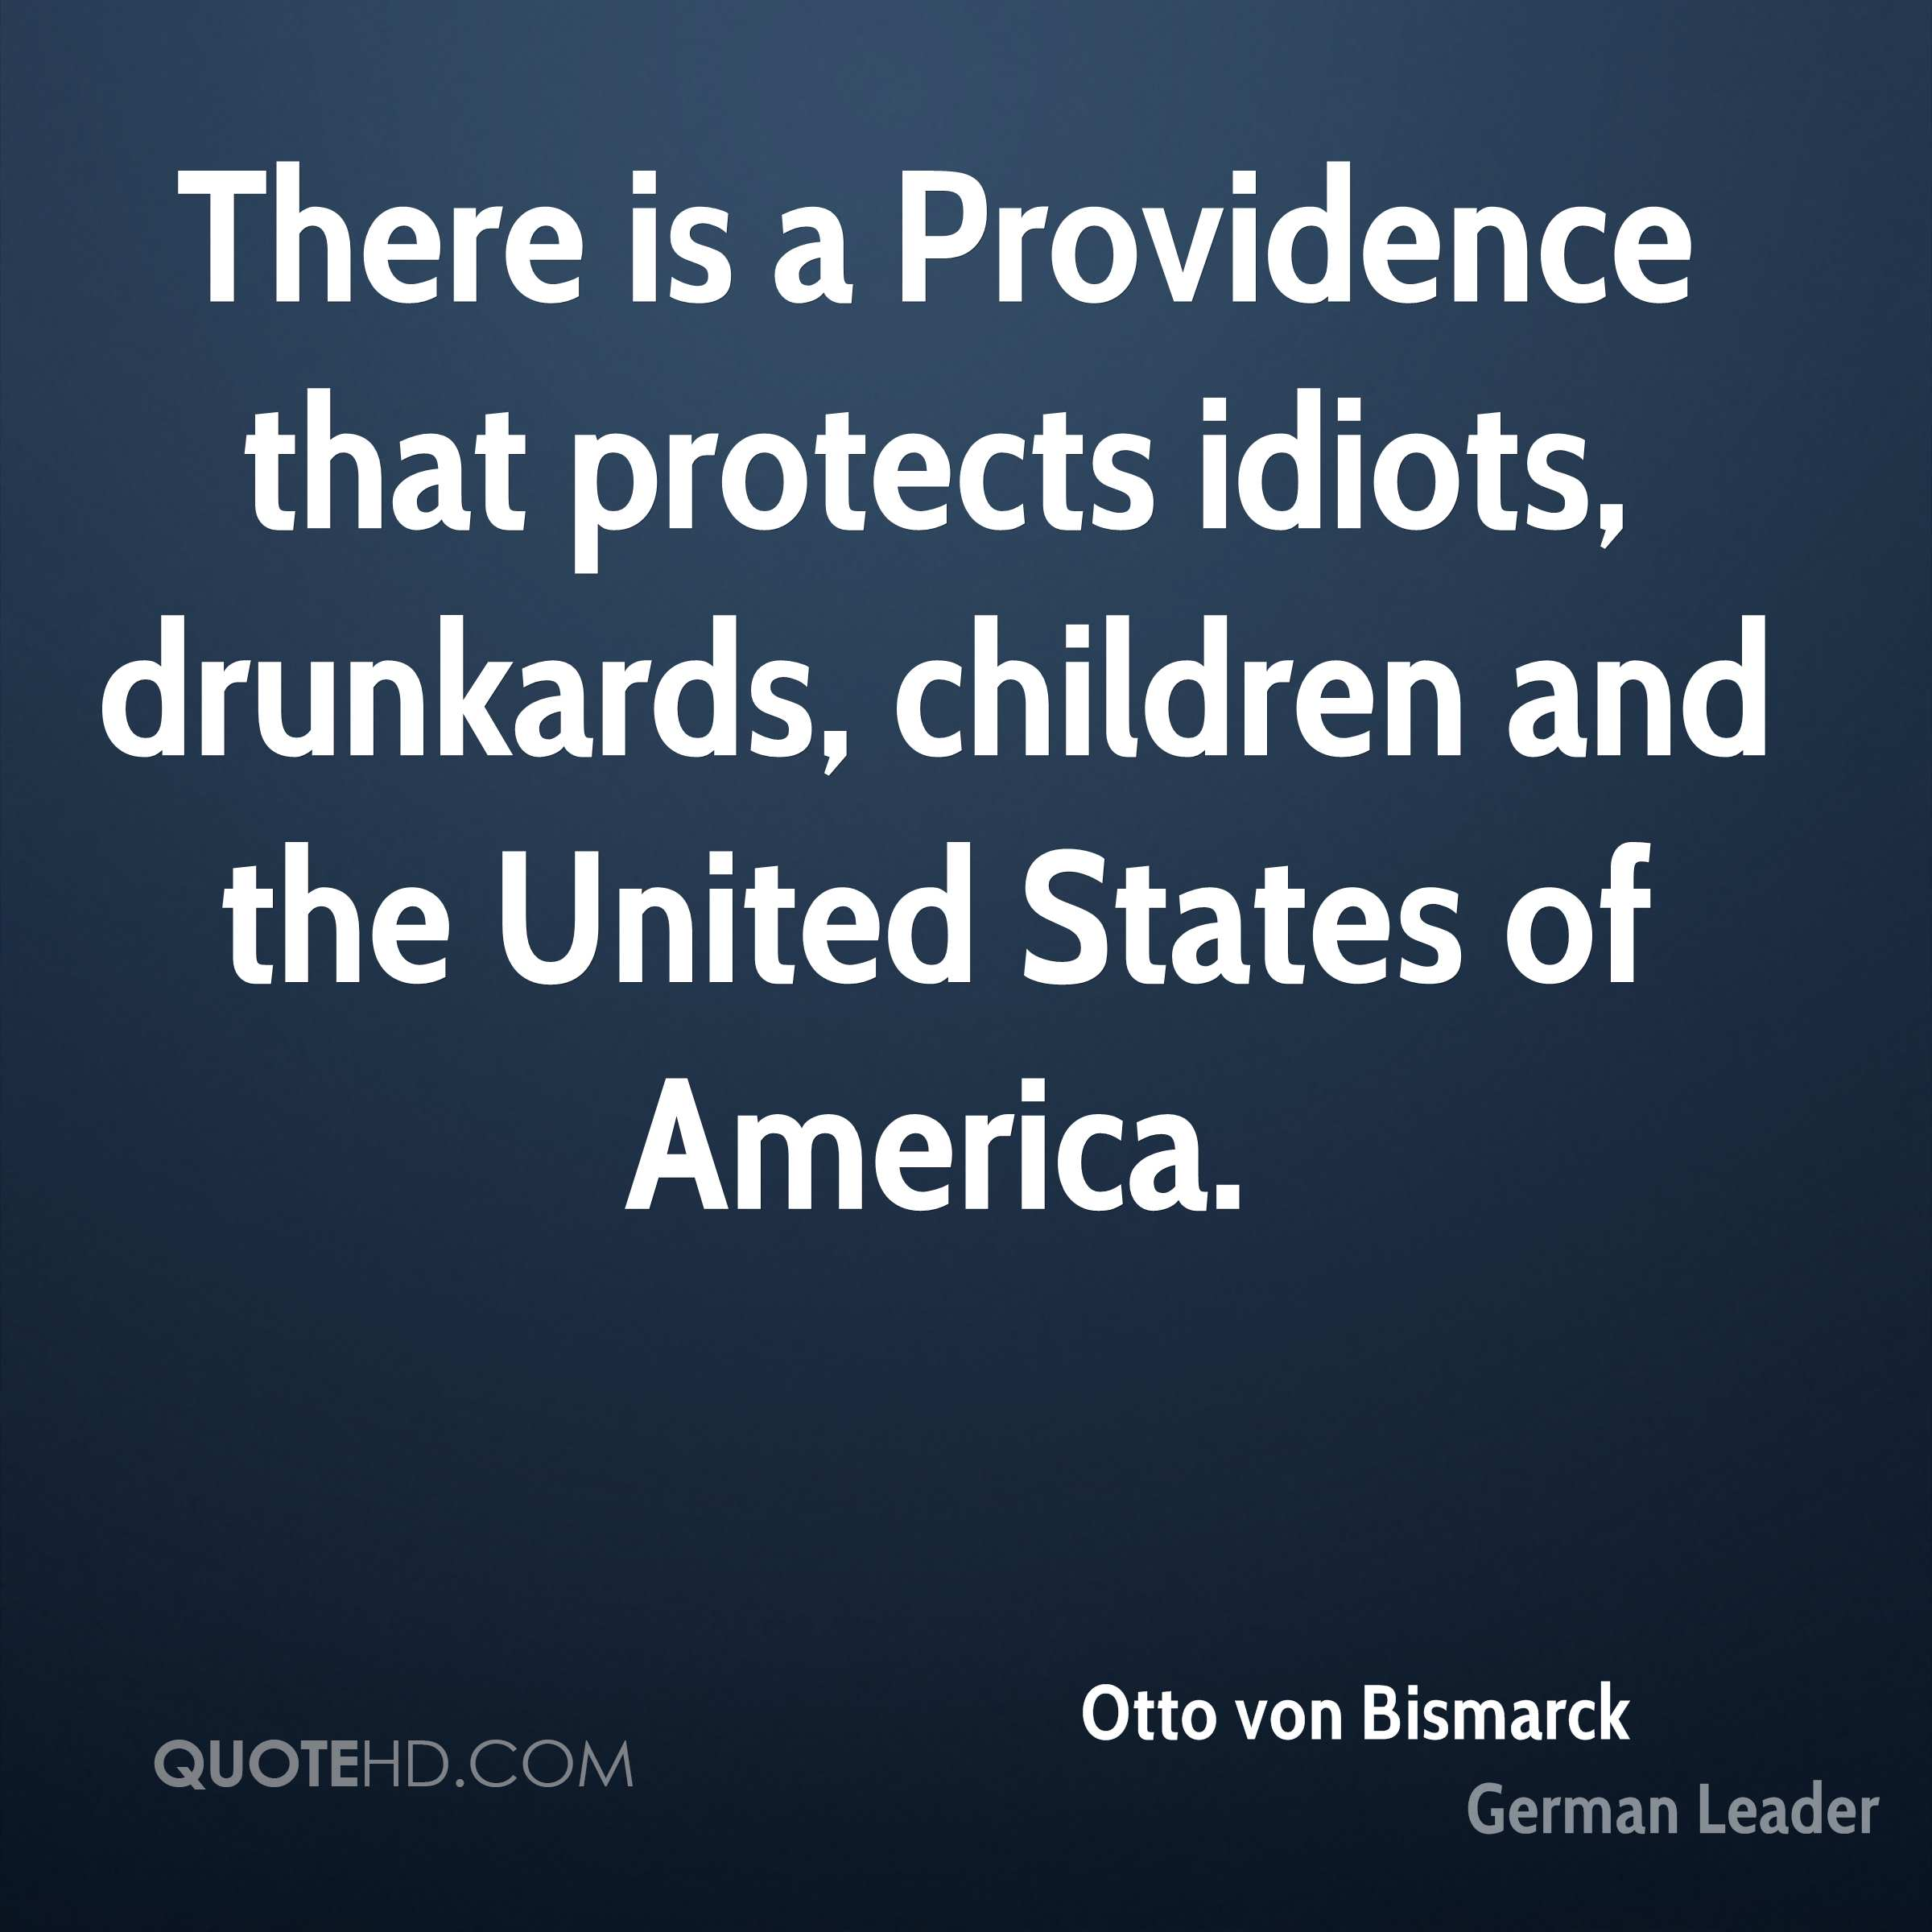 There is a Providence that protects idiots, drunkards, children and the United States of America.